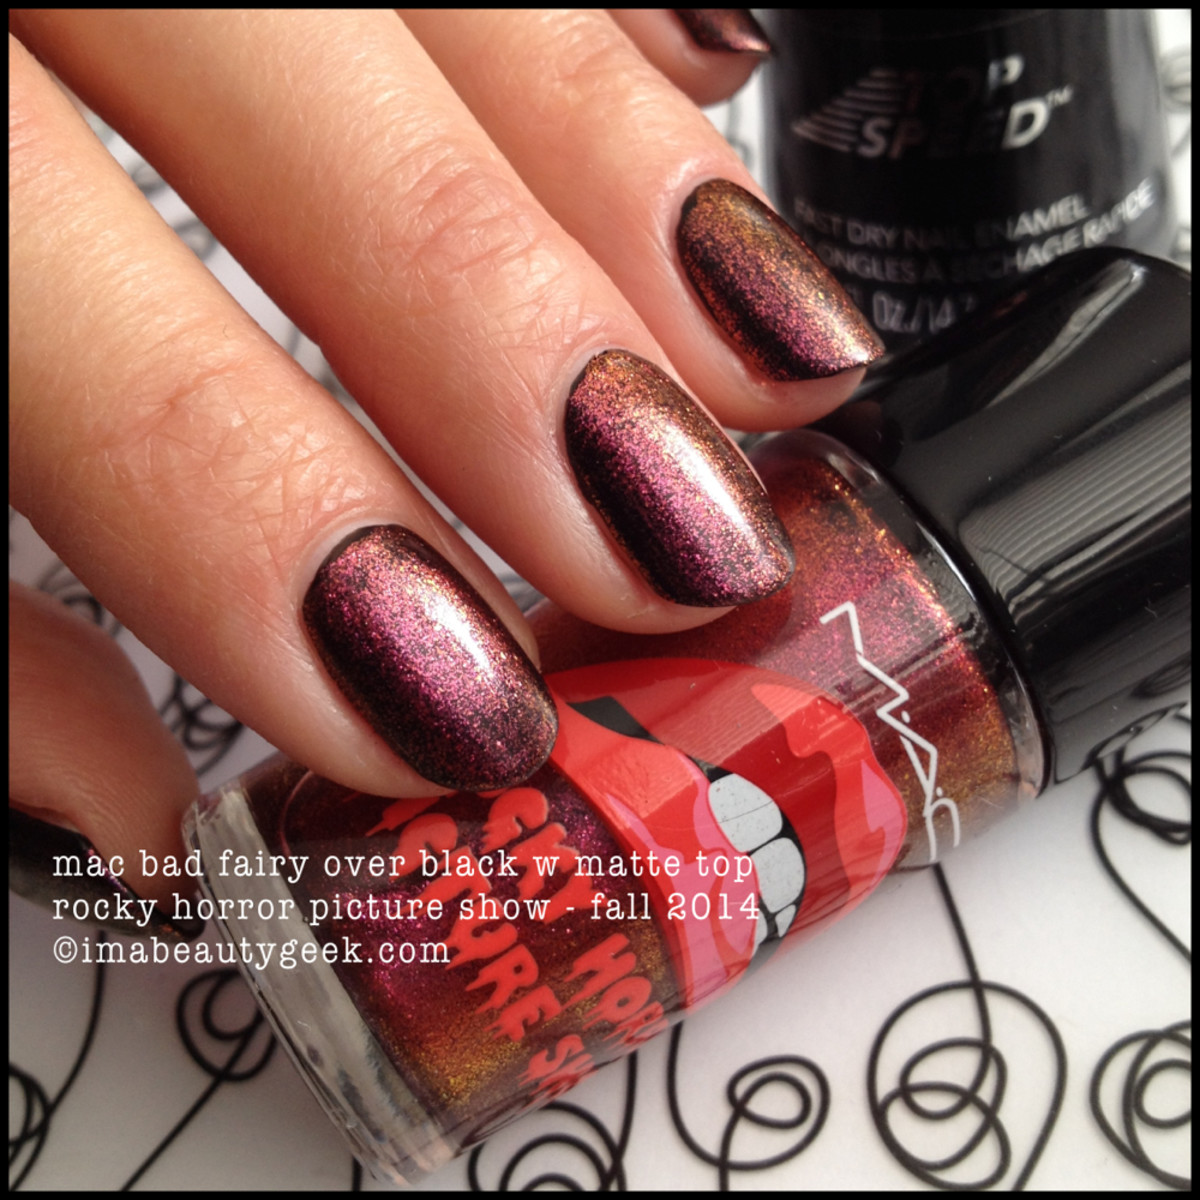 MAC Rocky Horror Picture Show Bad Fairy Polish over Black Fall 2014